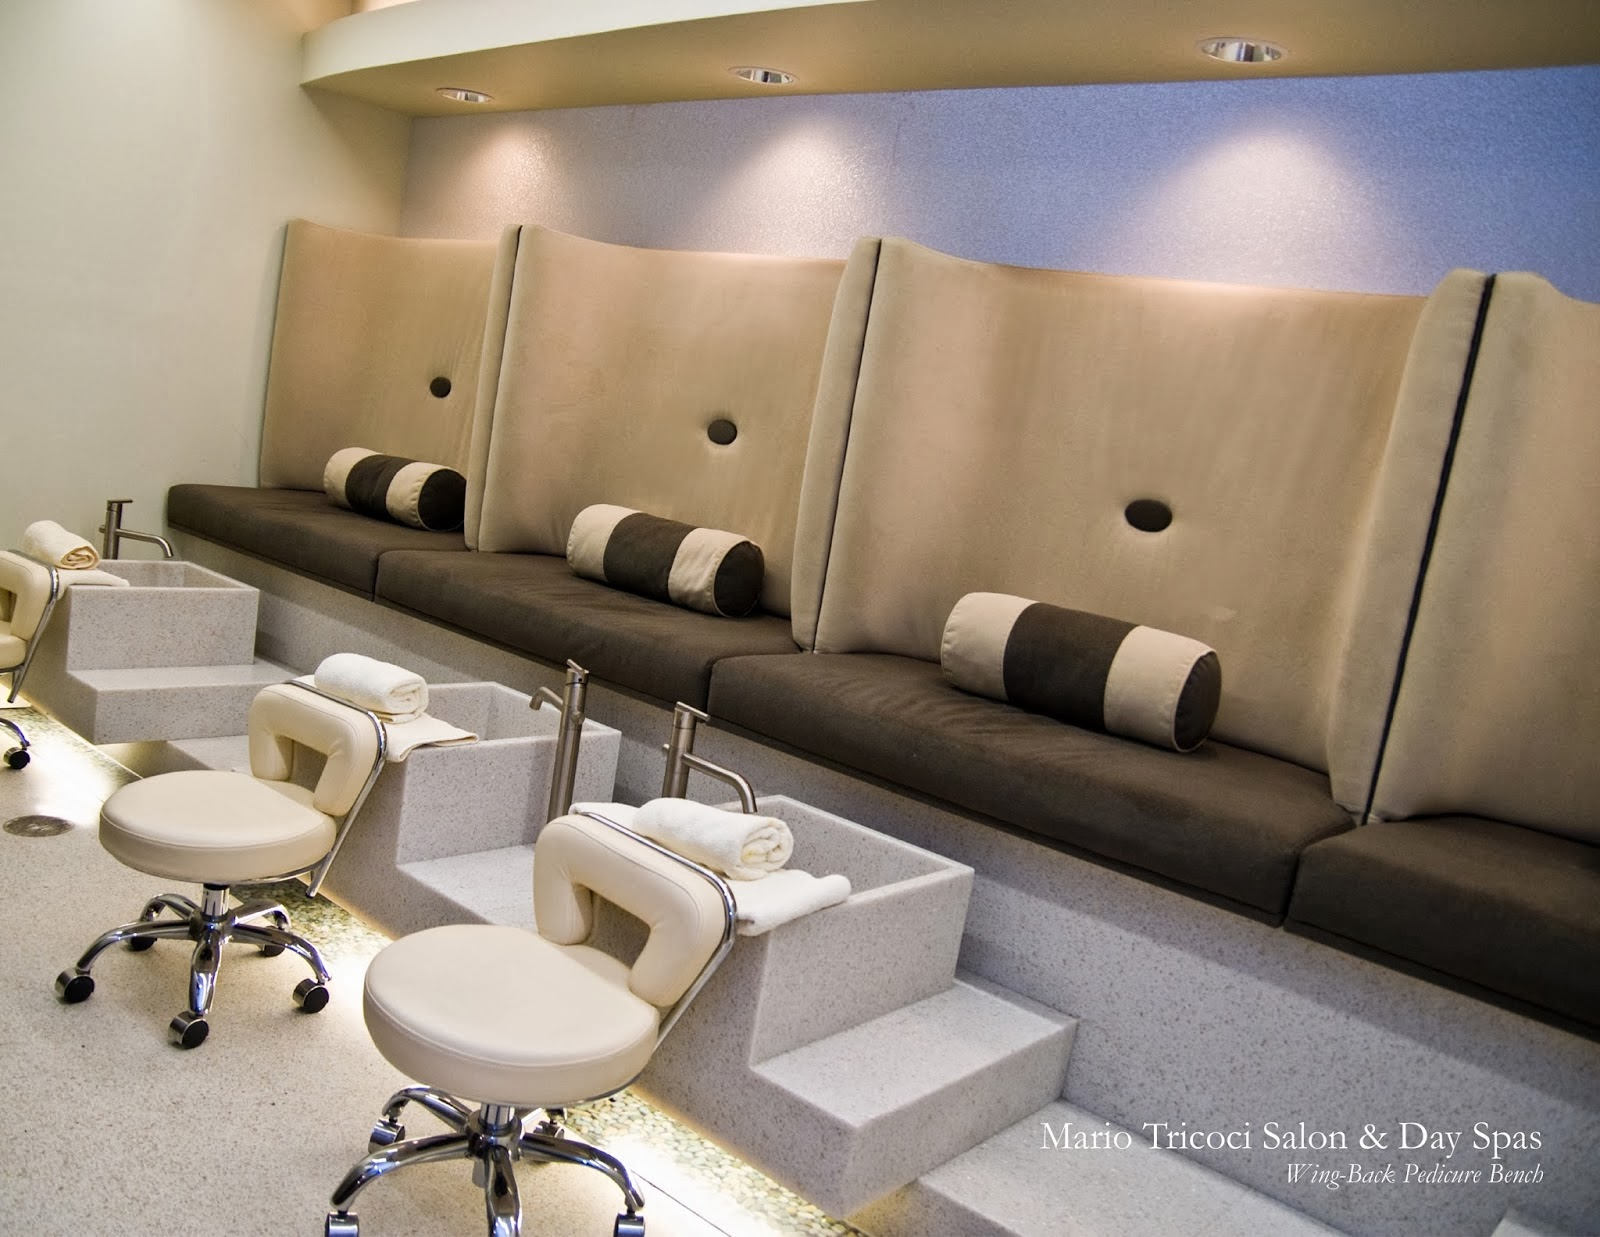 Michele pelafas nail spa salon design for Interieur design salon